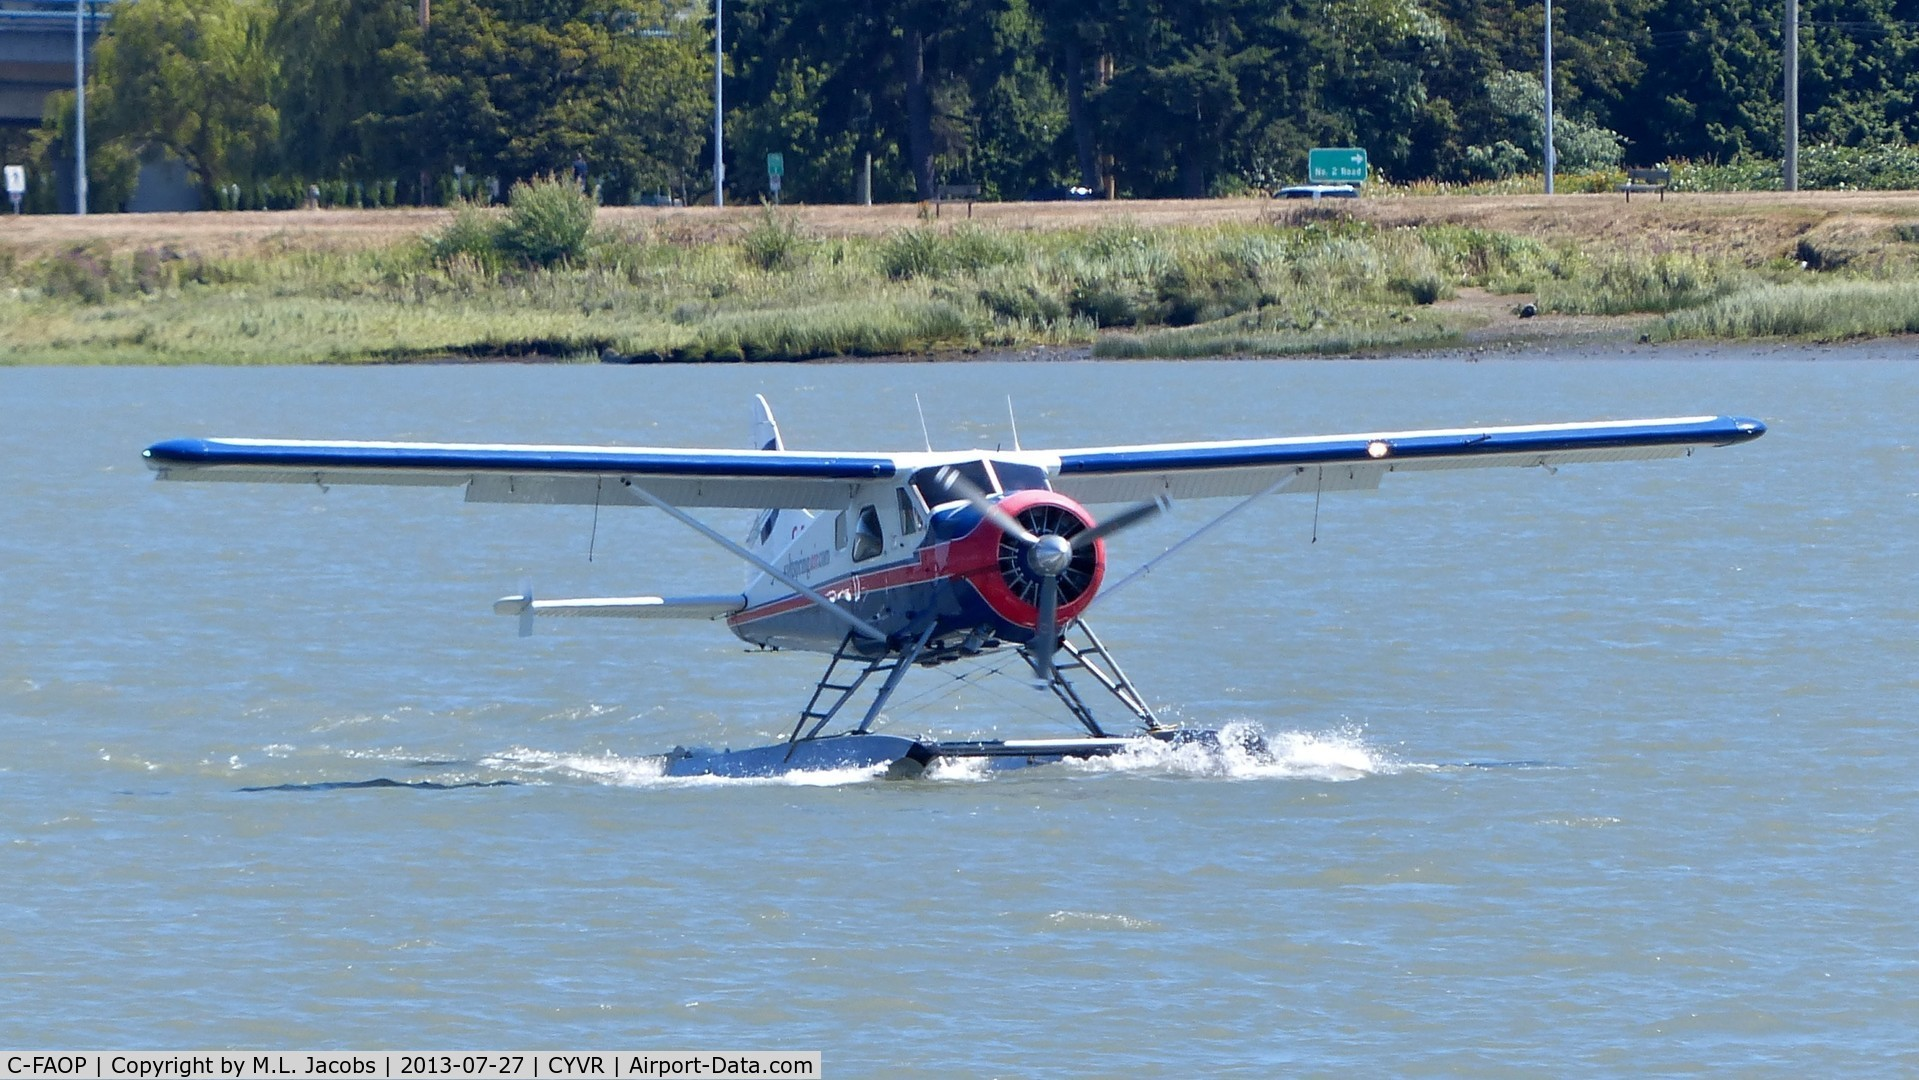 C-FAOP, 1958 De Havilland Canada DHC-2 Beaver Mk.1 C/N 1249, Saltspring Air Beaver just landed at YVR Seaplane Terminal on the Fraser River.